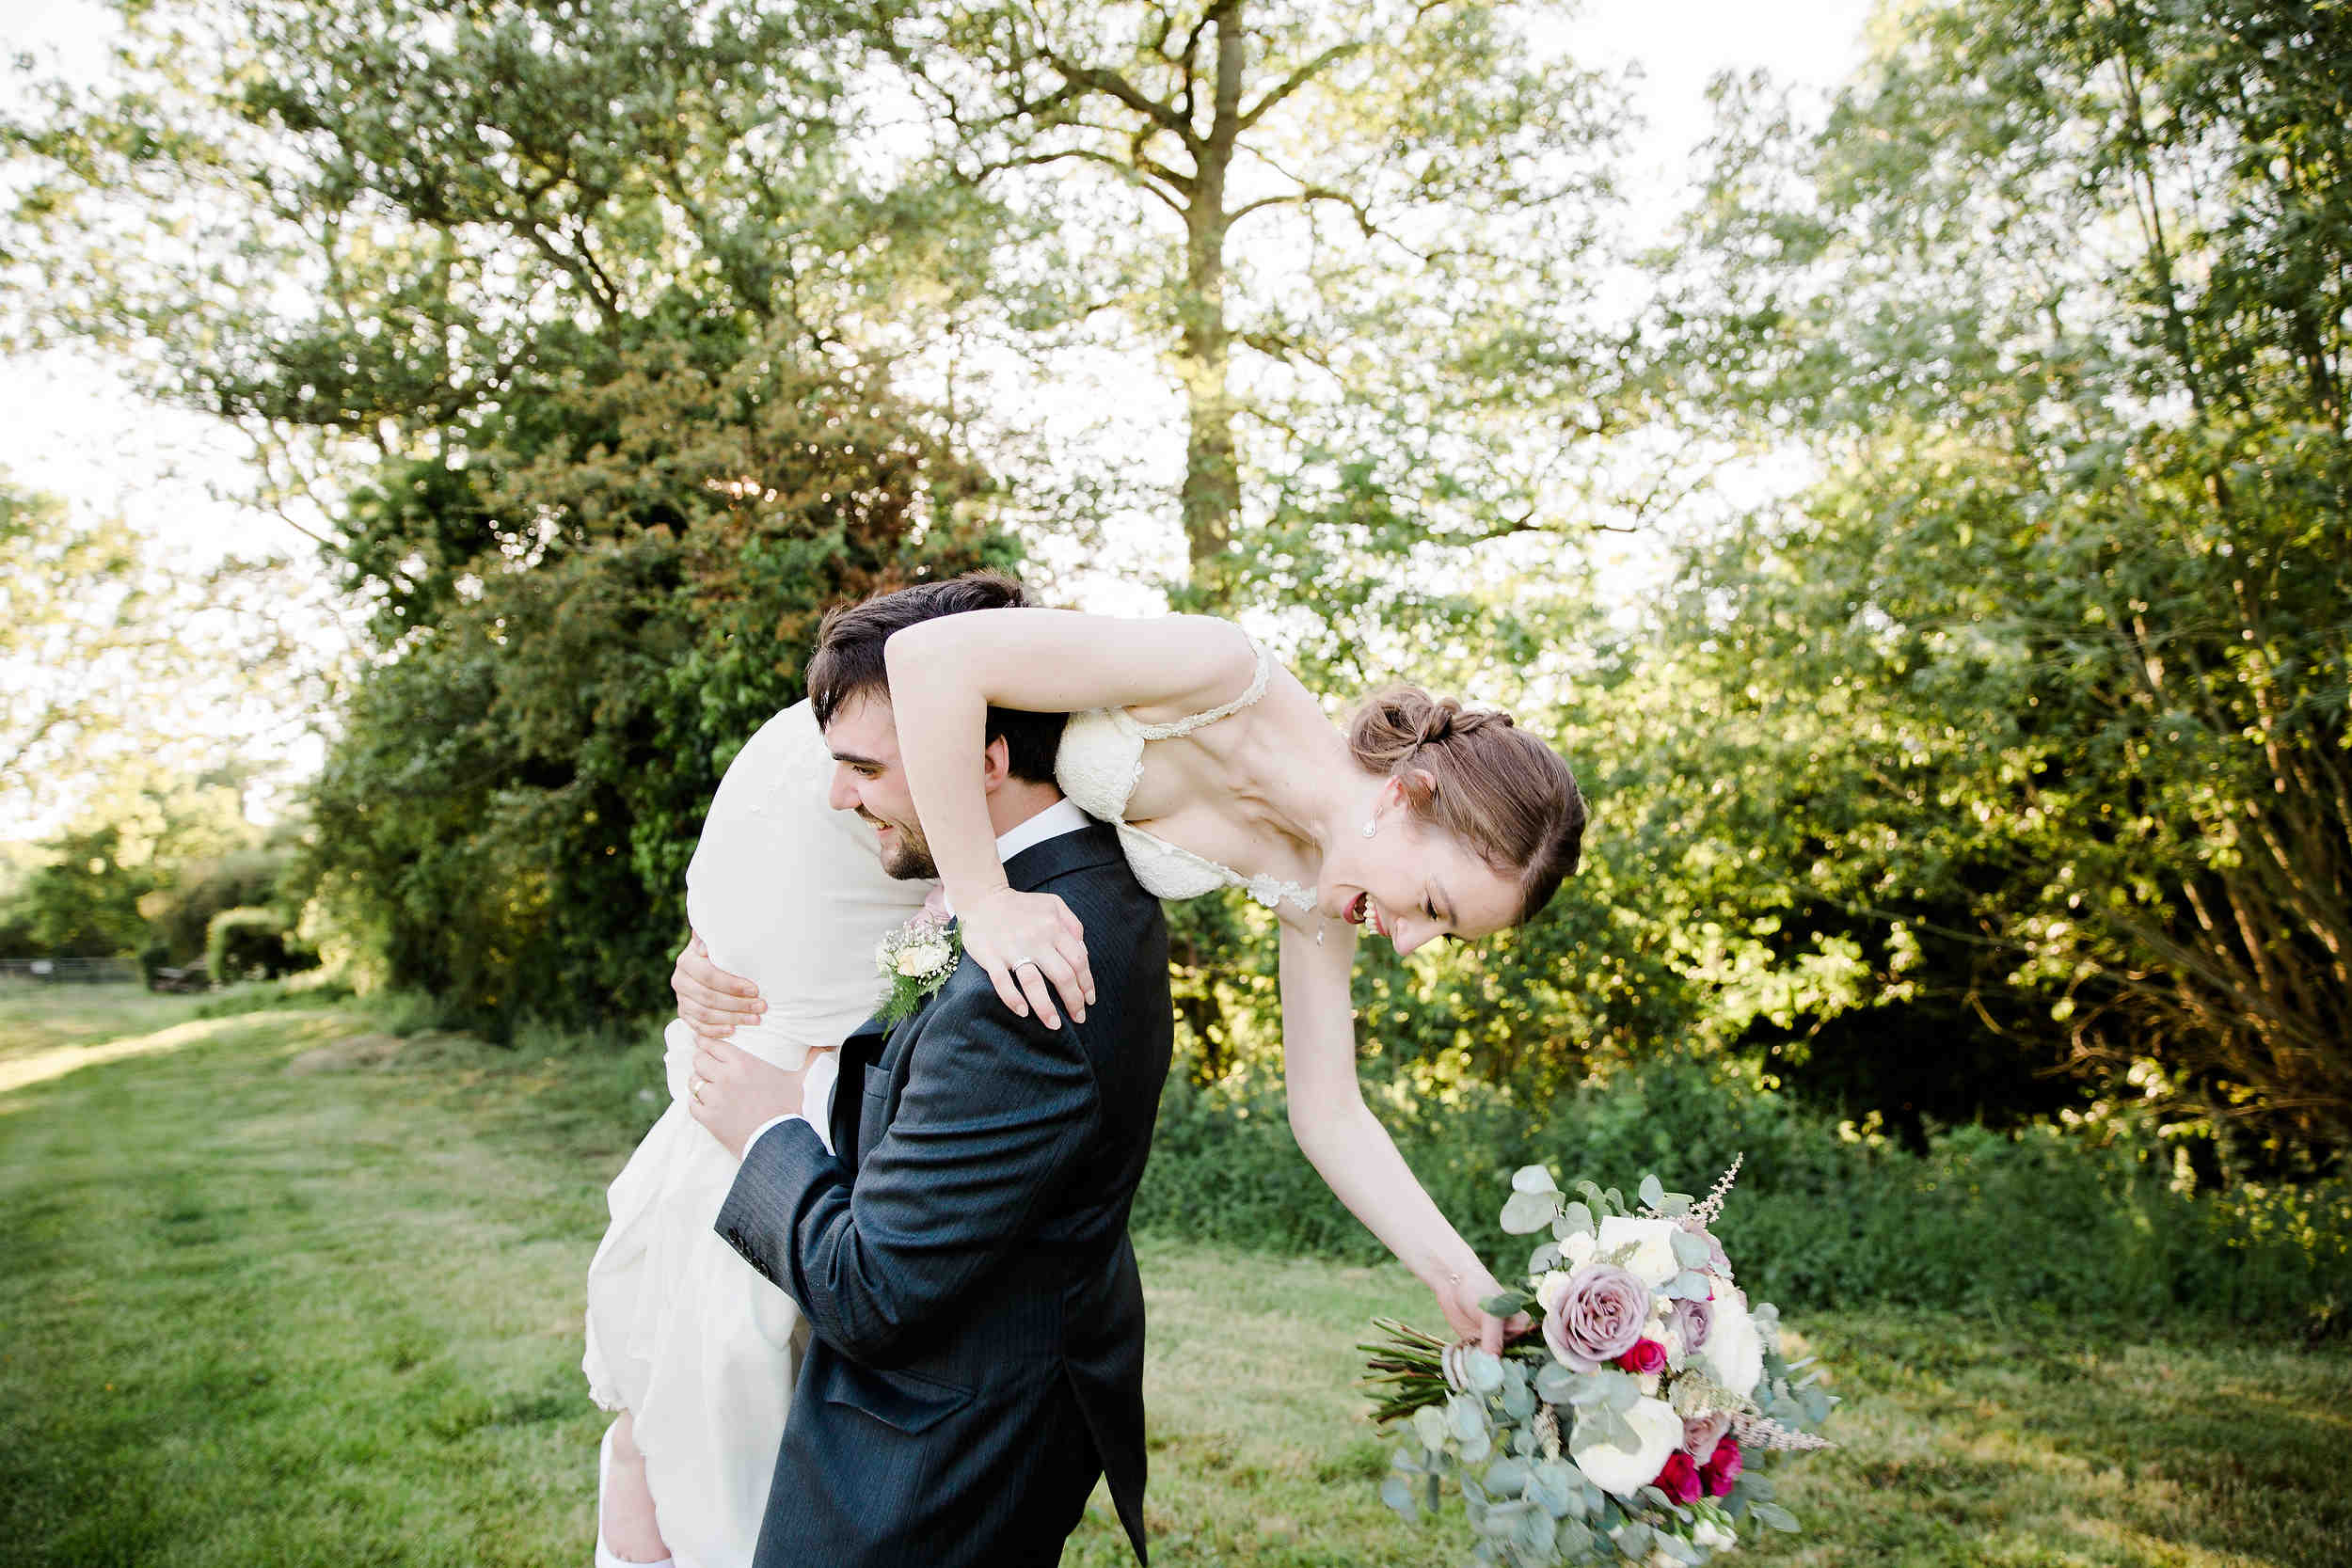 groom picks up bride and carries her away